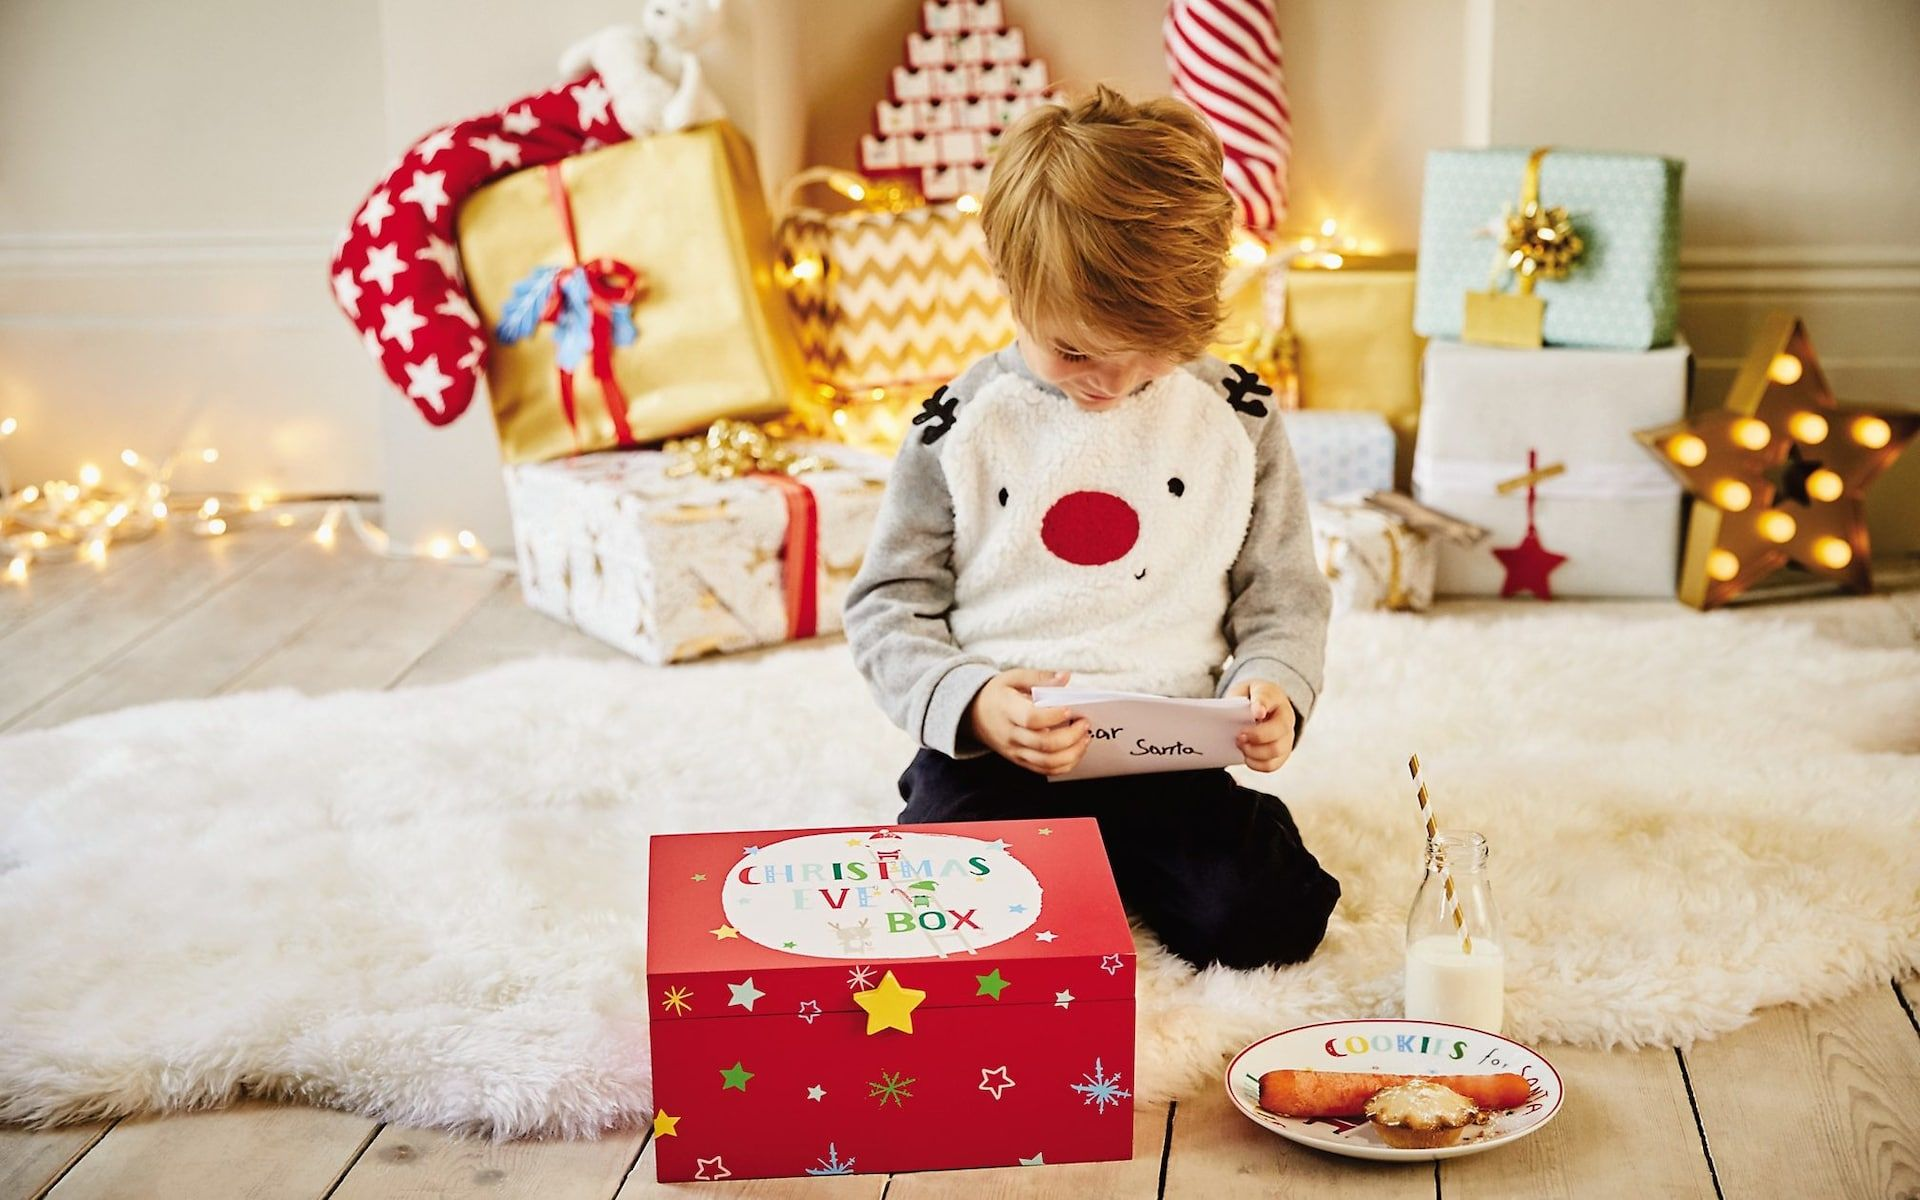 How to make a great Christmas Eve box, from gift ideas to ready-made boxes | Christmas eve ...